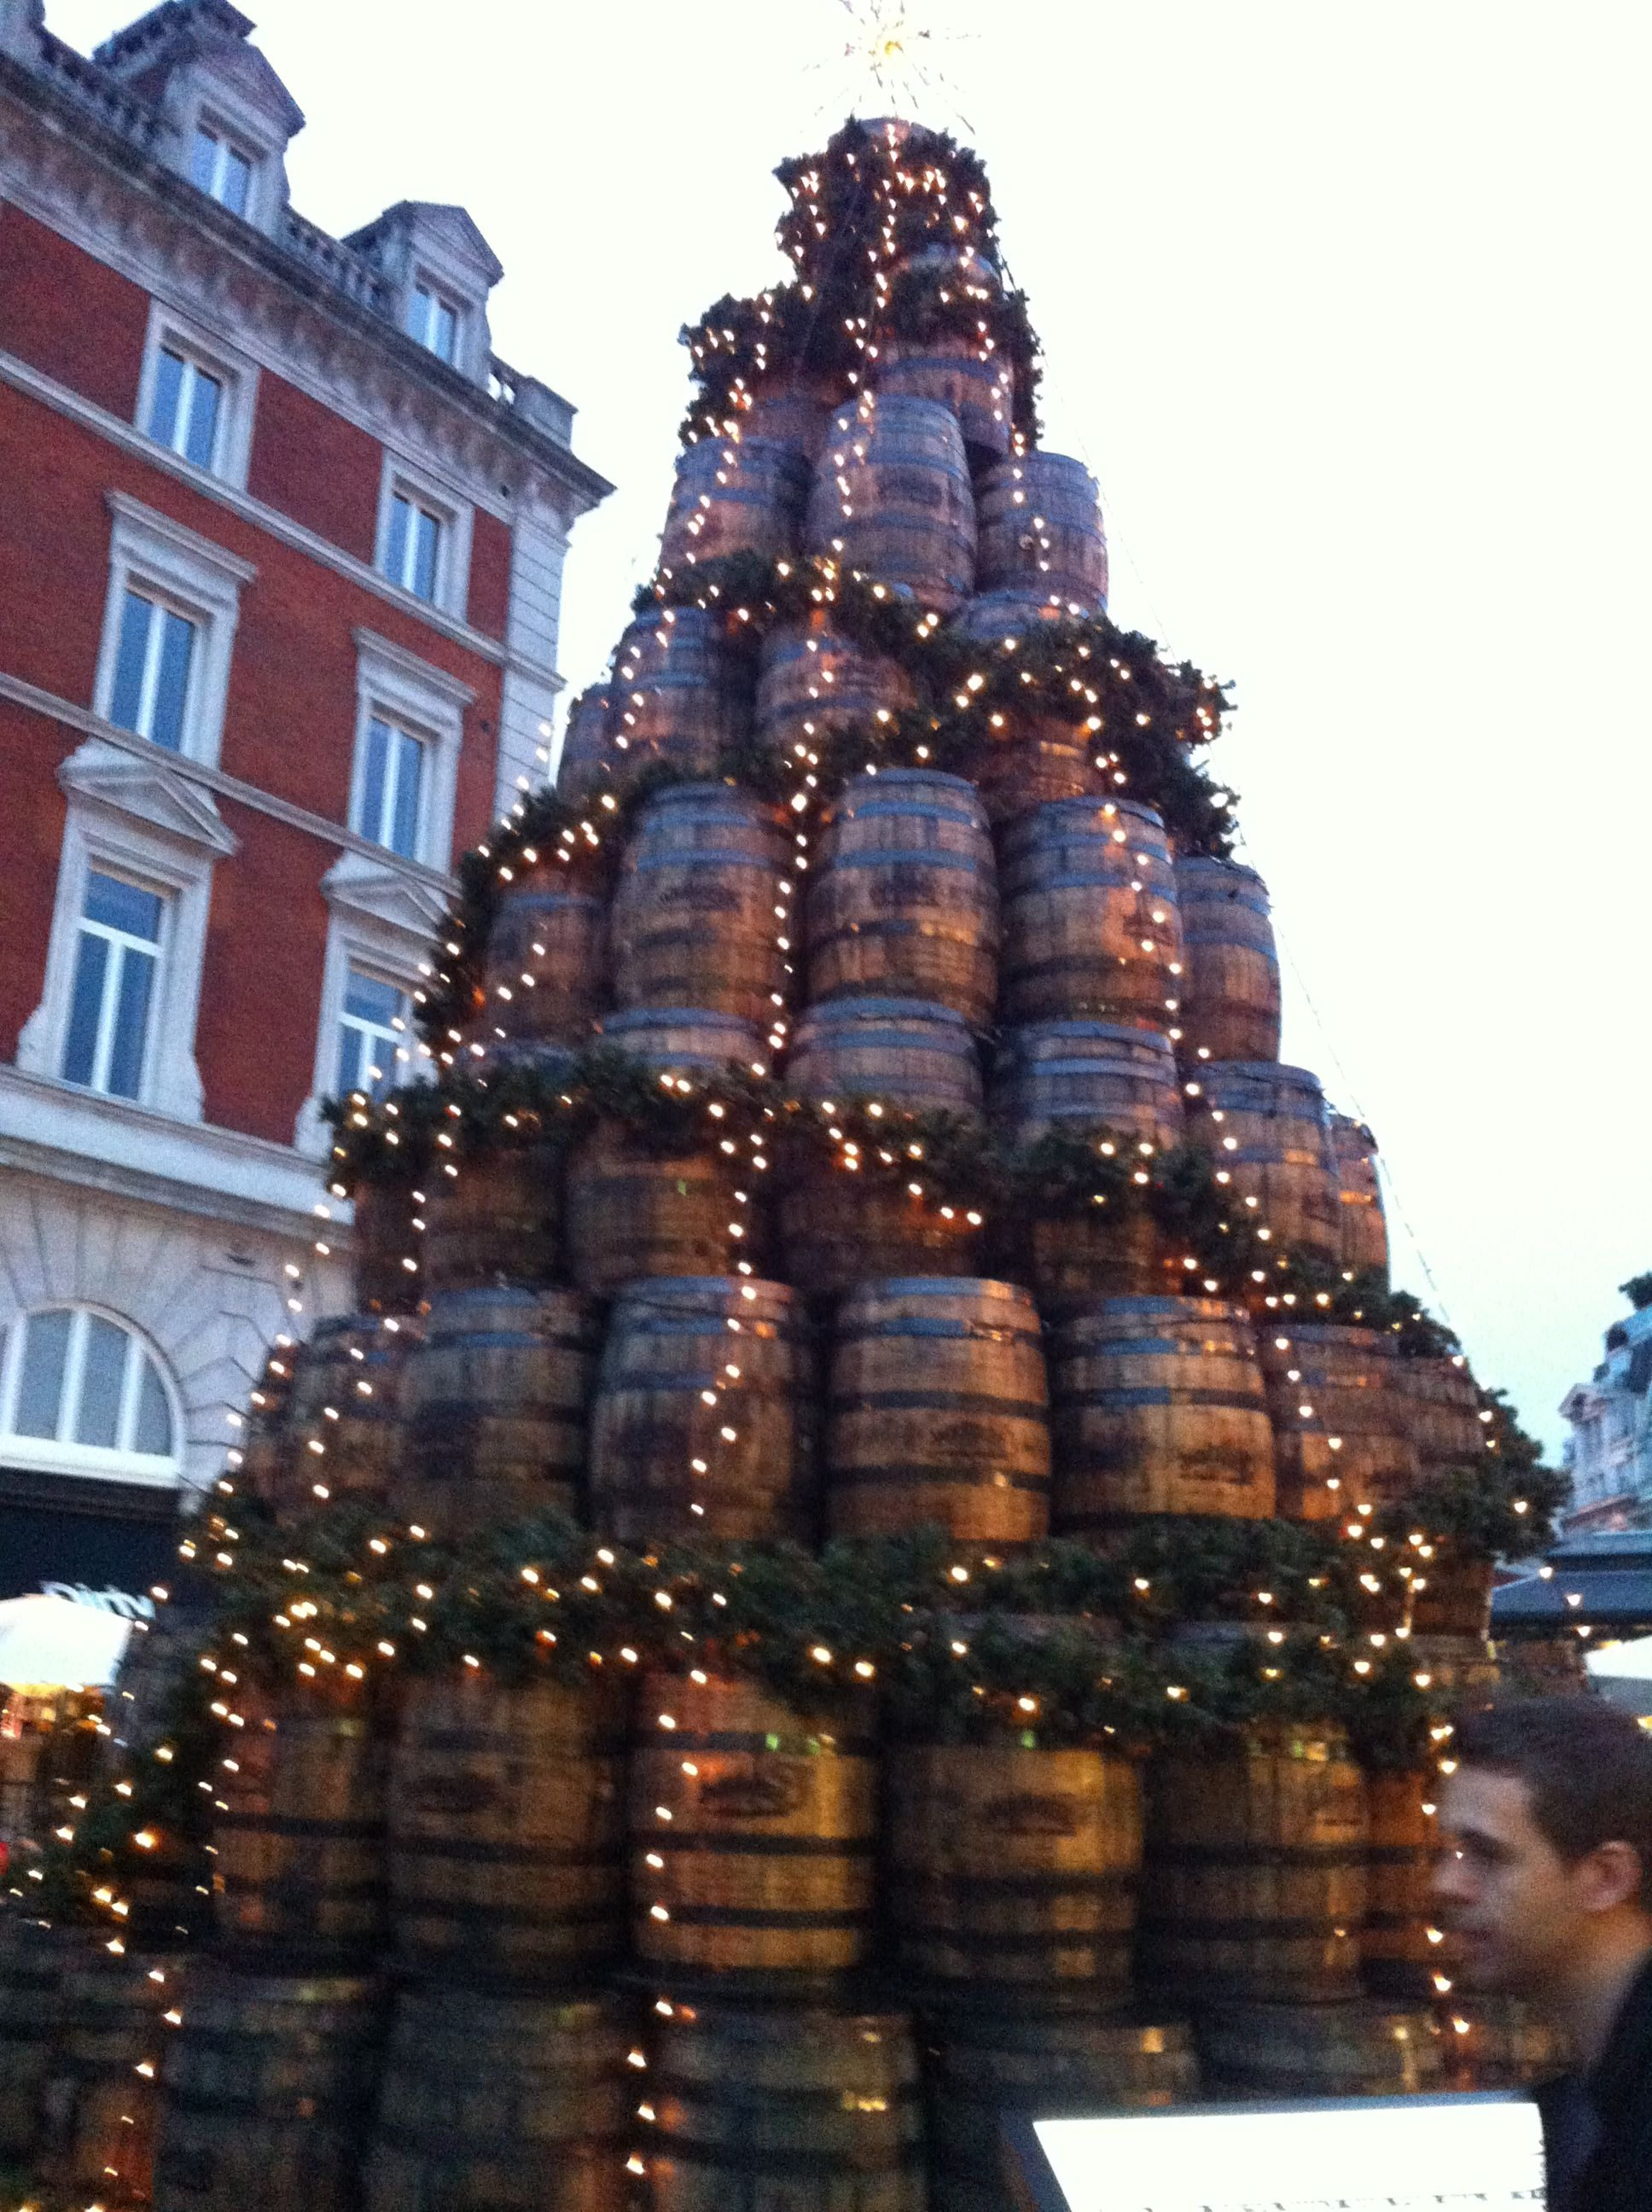 The Christmas barrel tree in Covent Garden, London